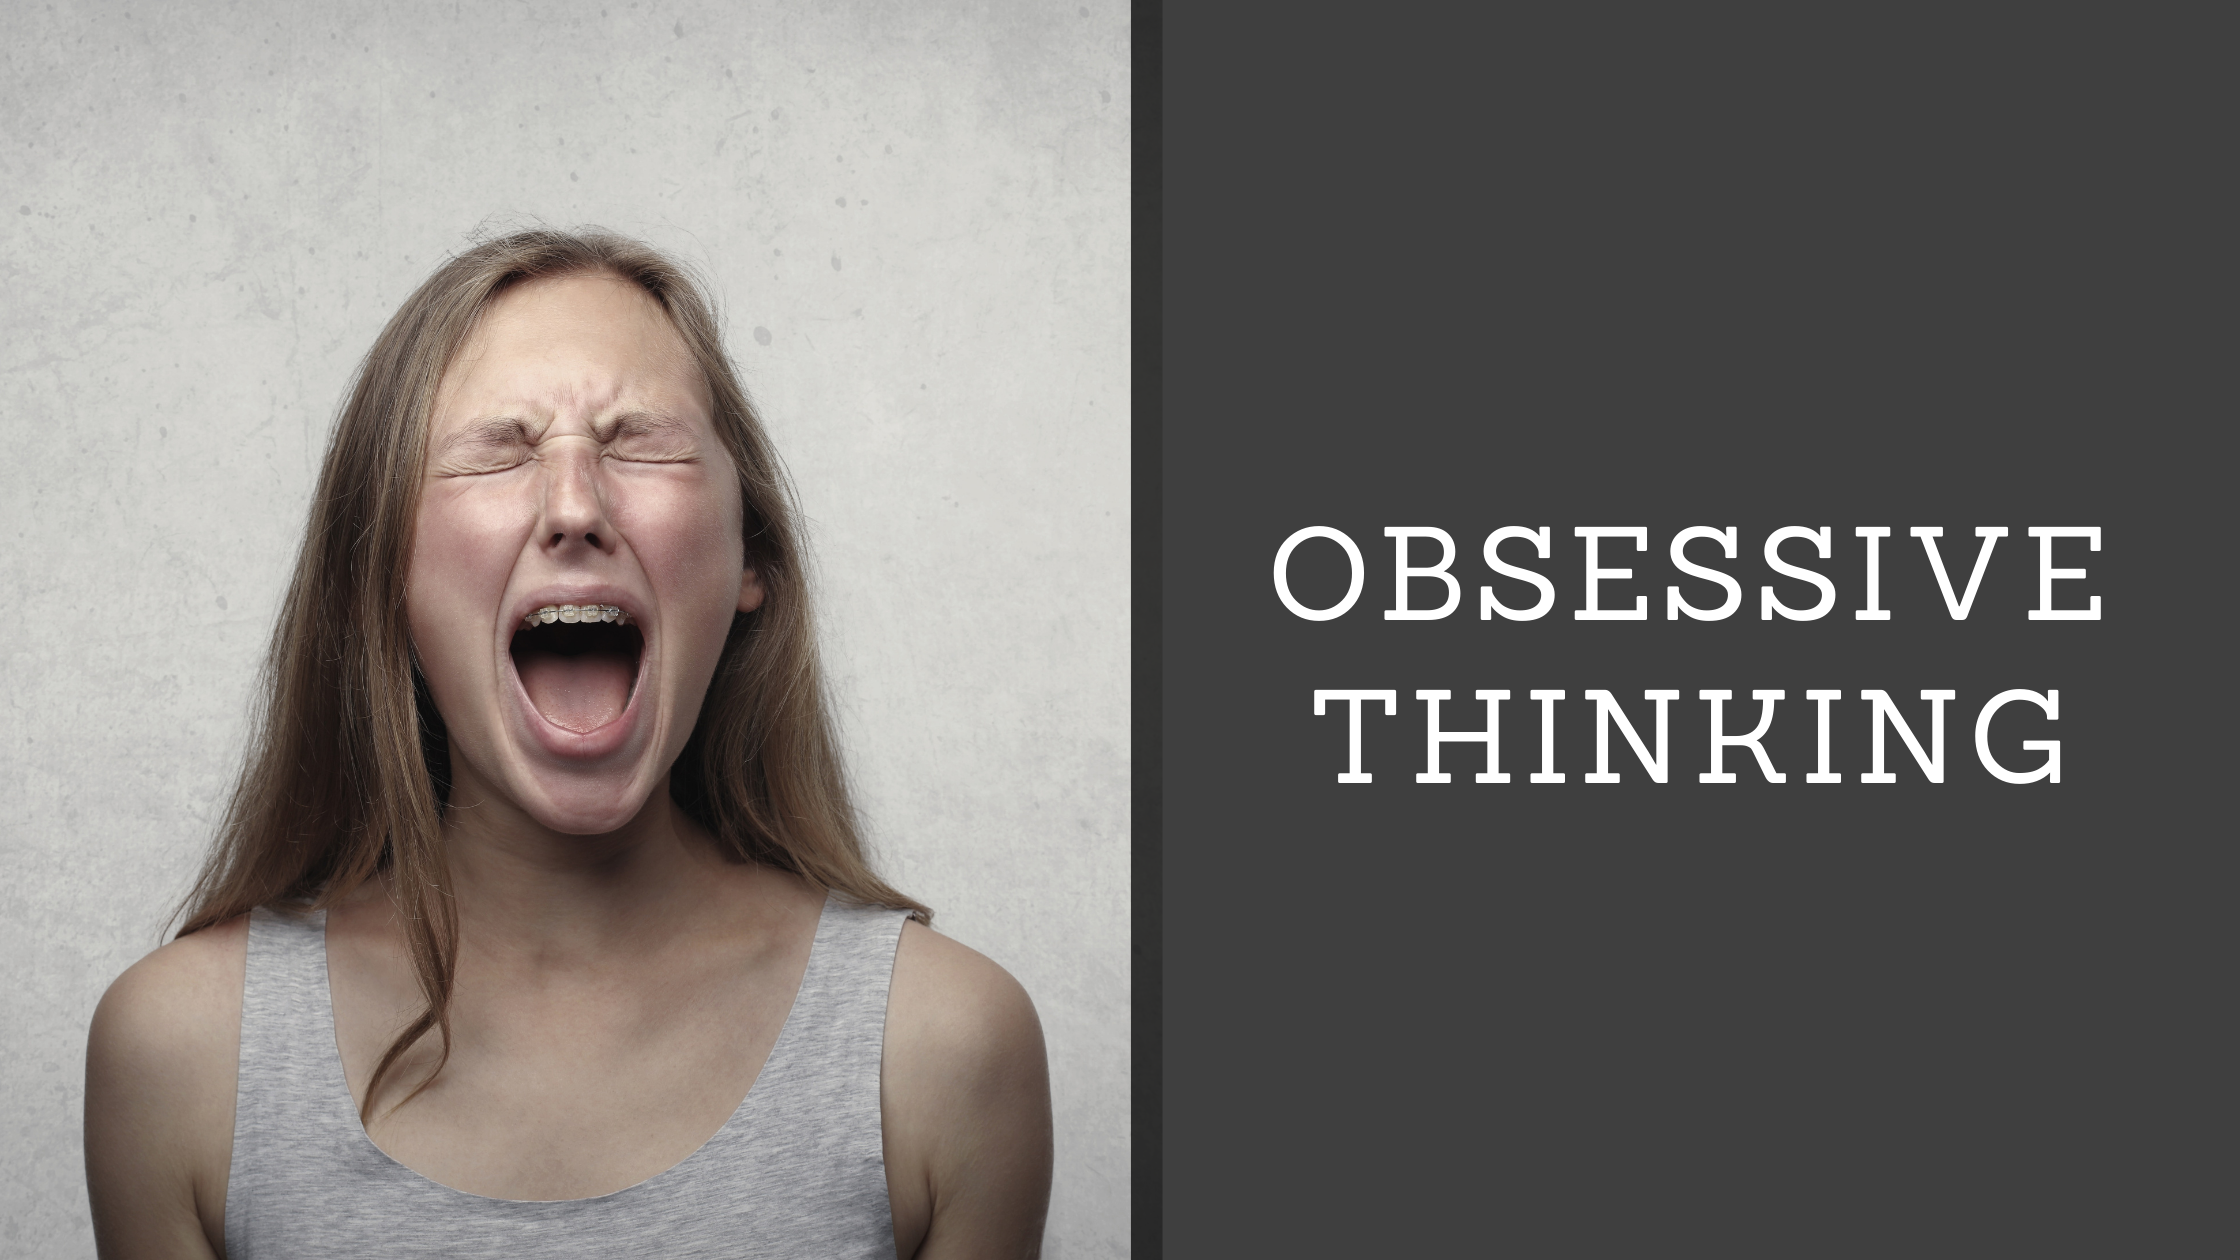 Obsessive Thinking - Examples & Steps to Overcome